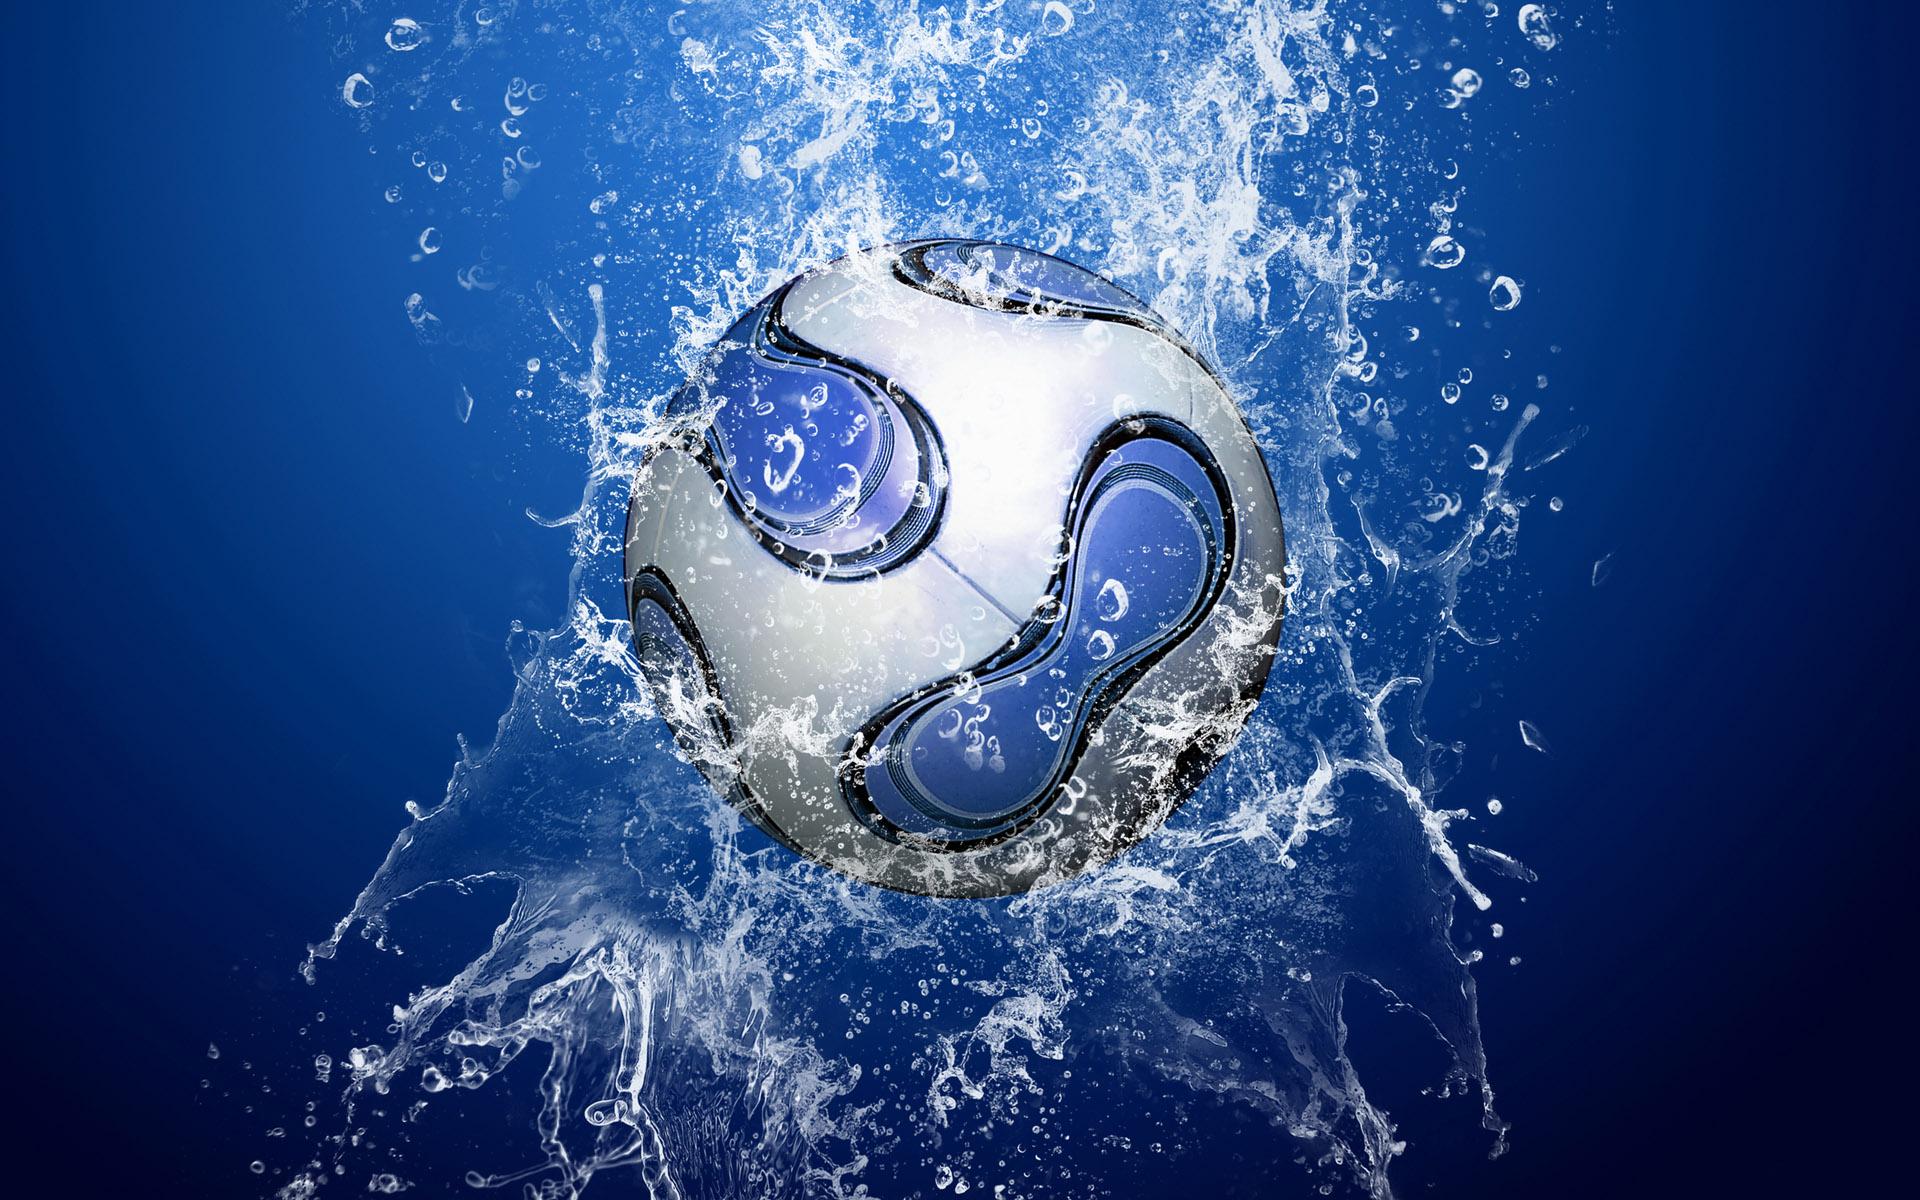 Soccer ball in the water jet